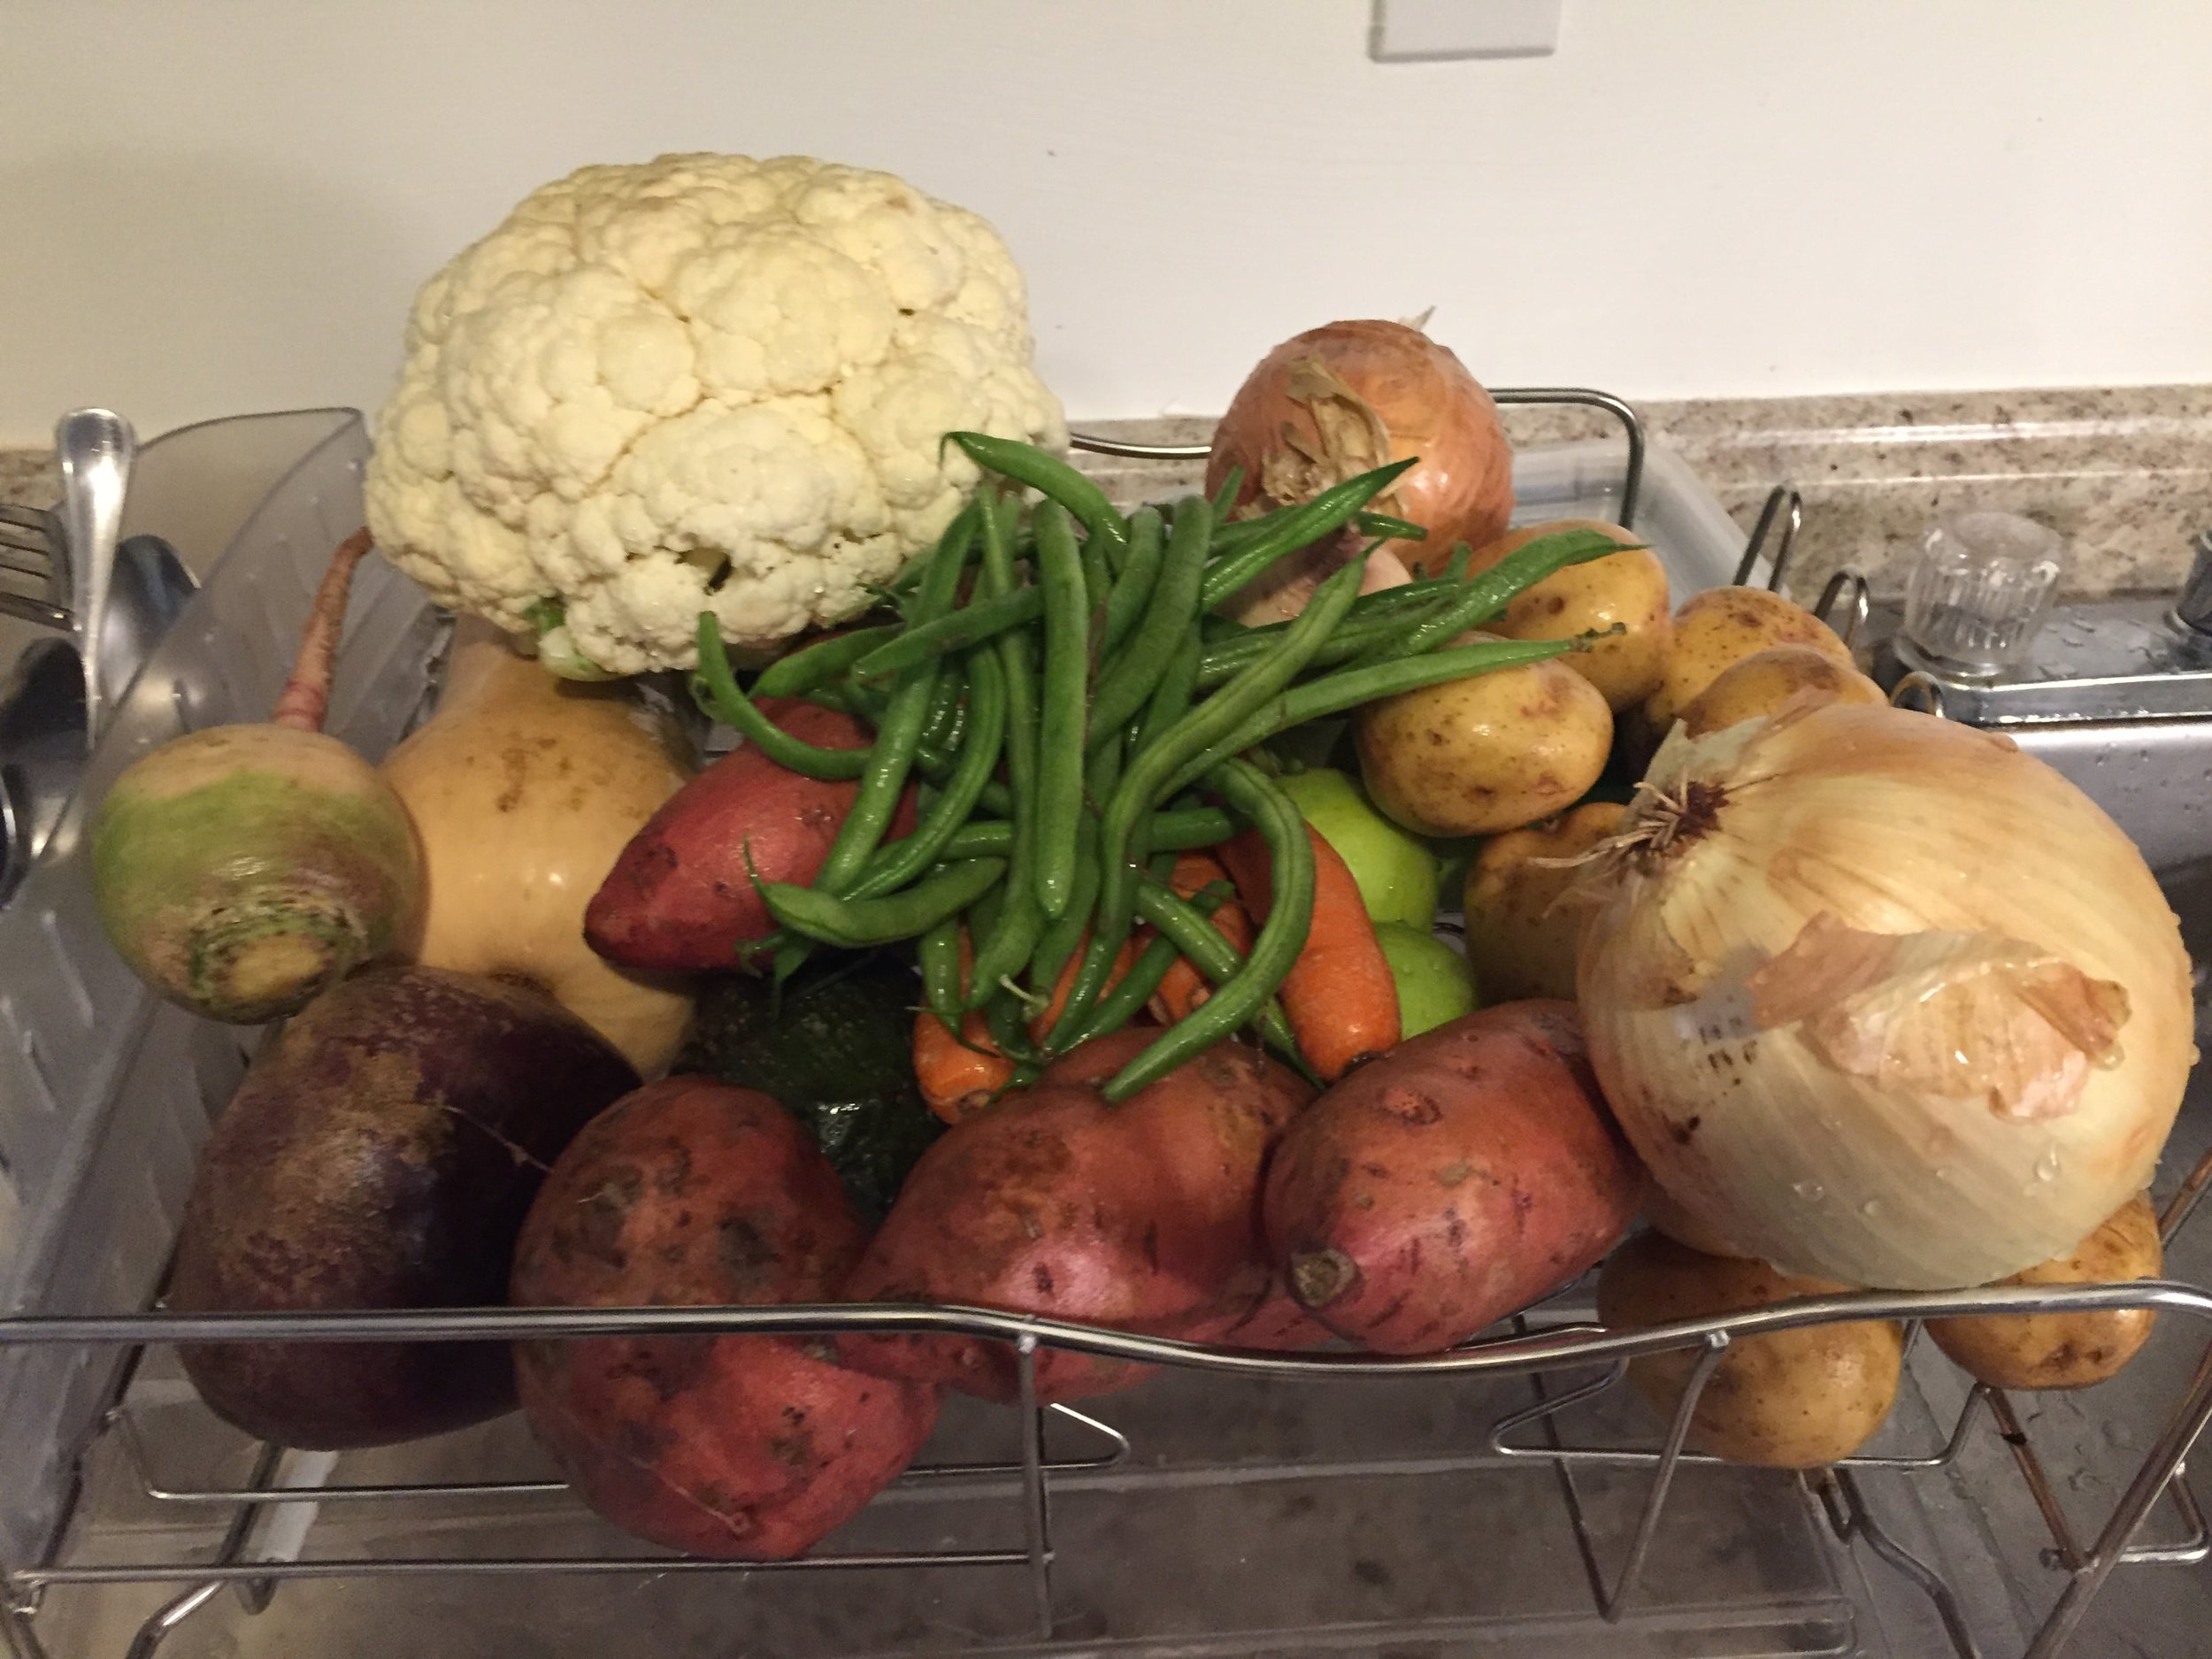 One week's worth of produce from Misfits Markets. Not pictured: greens. Costs around $24.